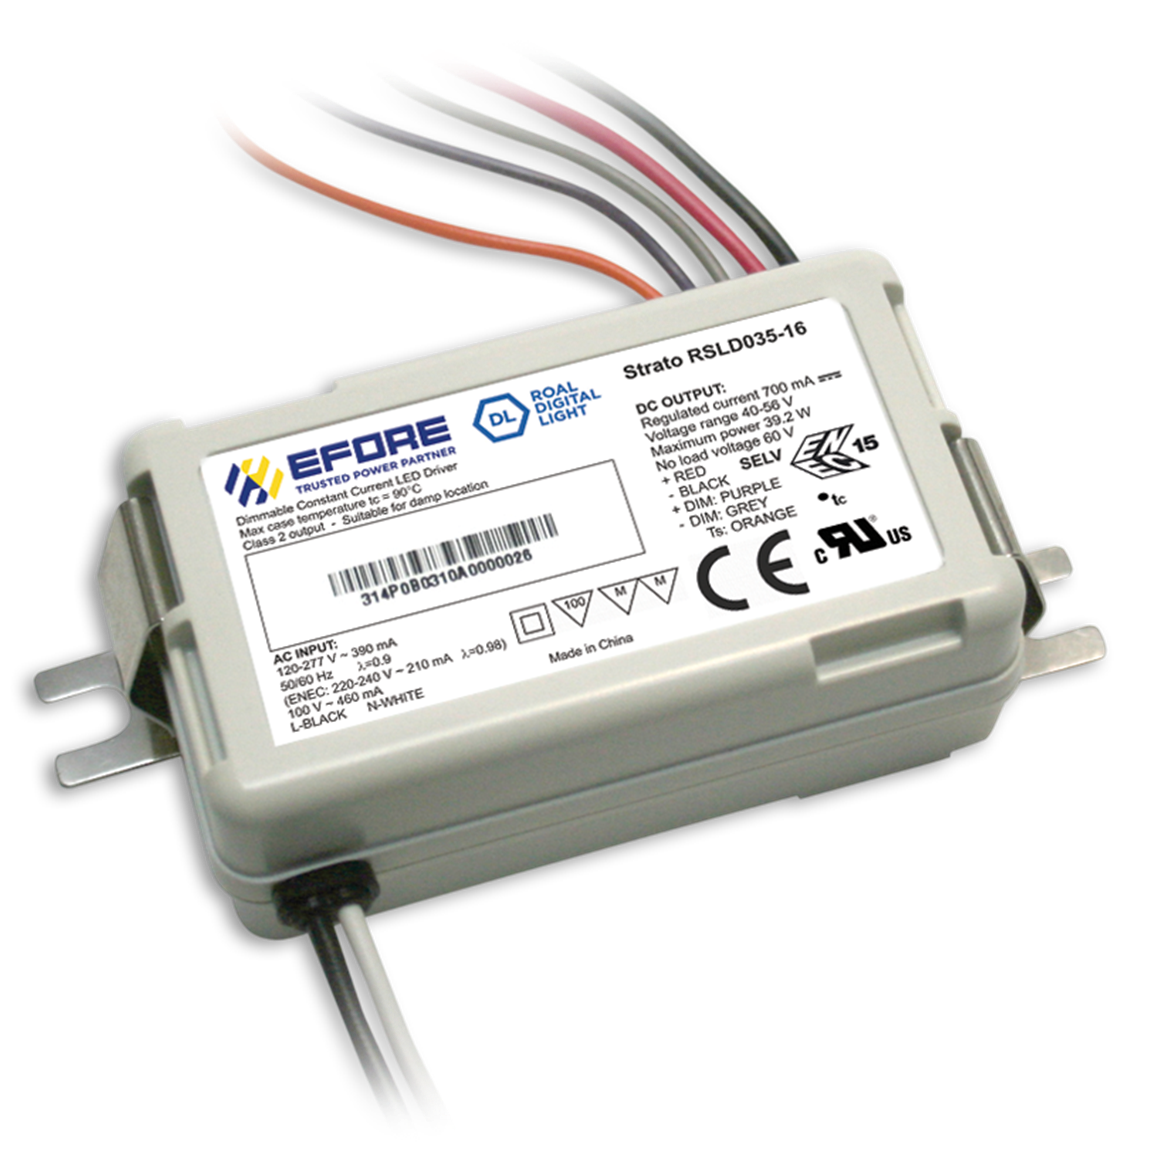 STRATO 35 Constant Current LED Driver